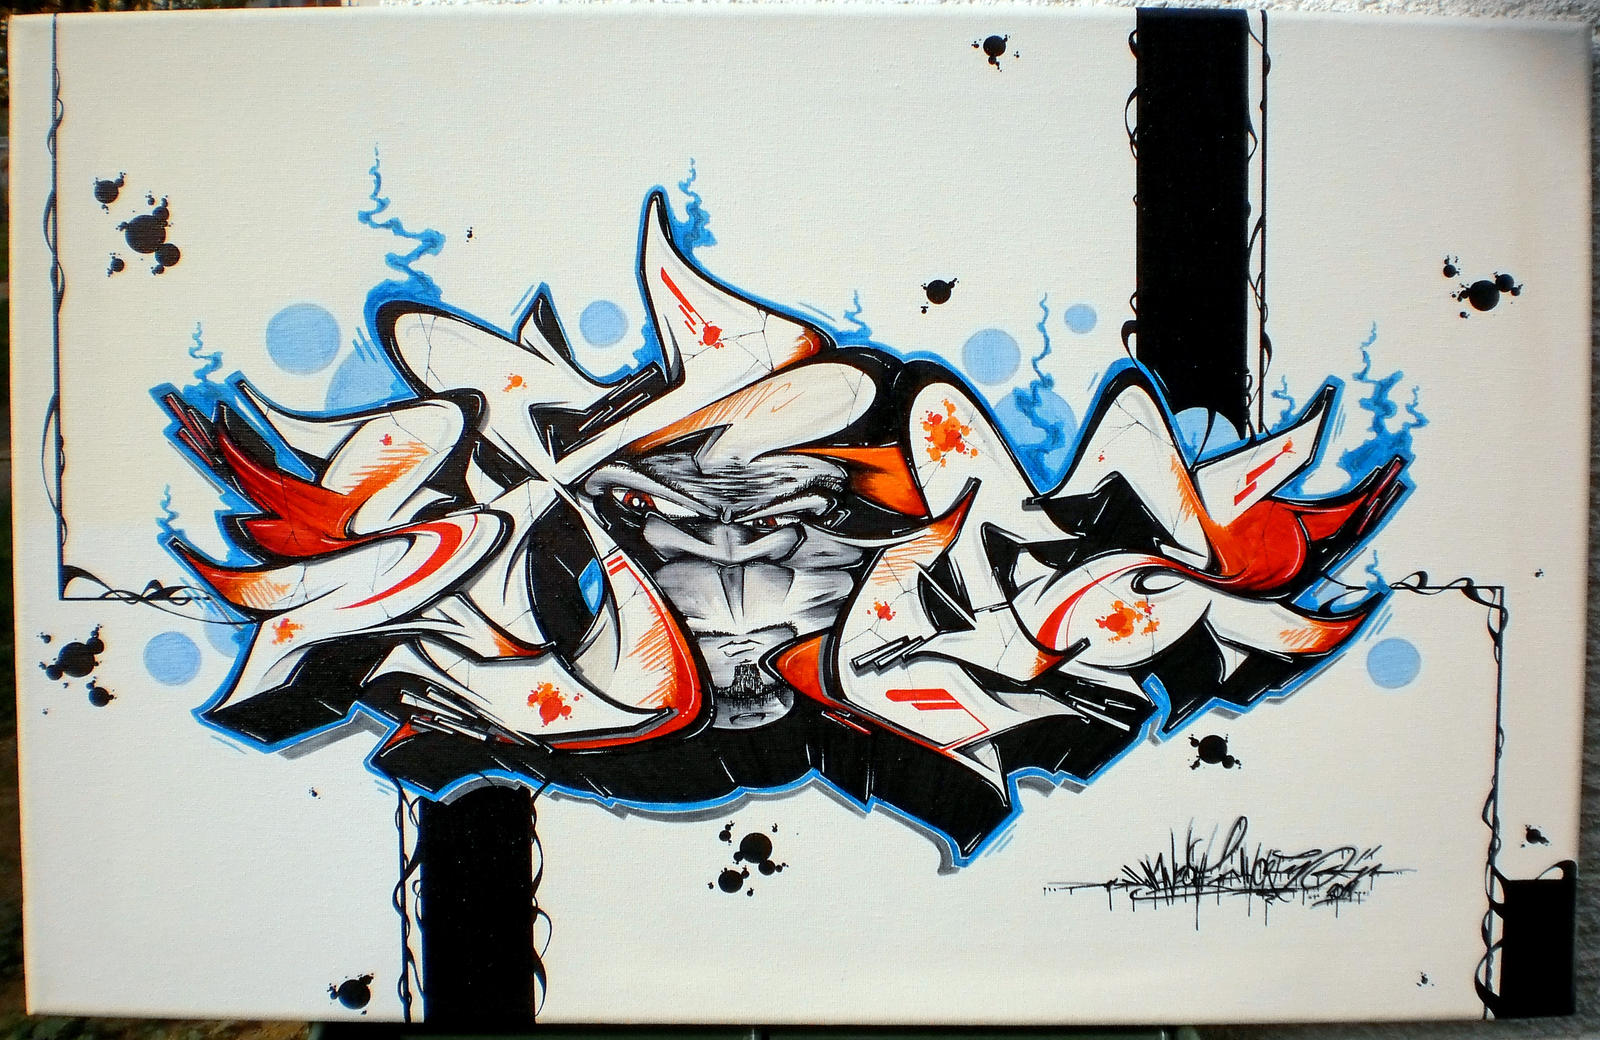 snz canvas by SANS-01-2-MHC-BS